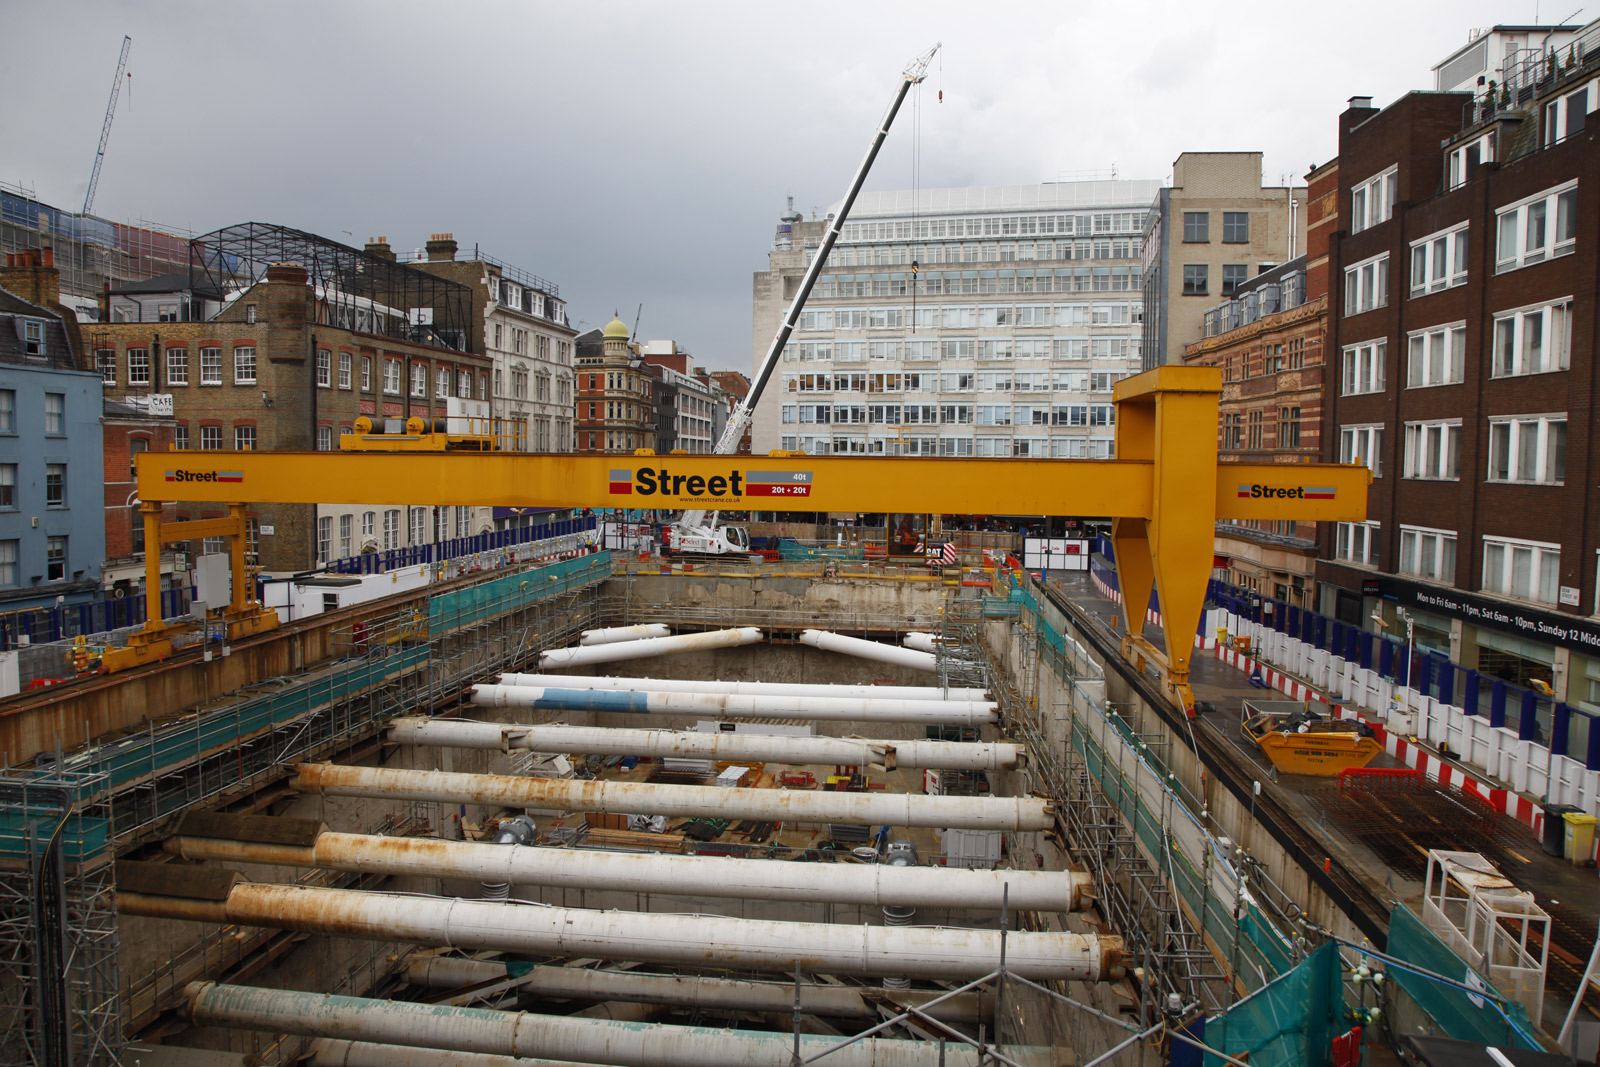 The Crossrail worksite from my window in 2014